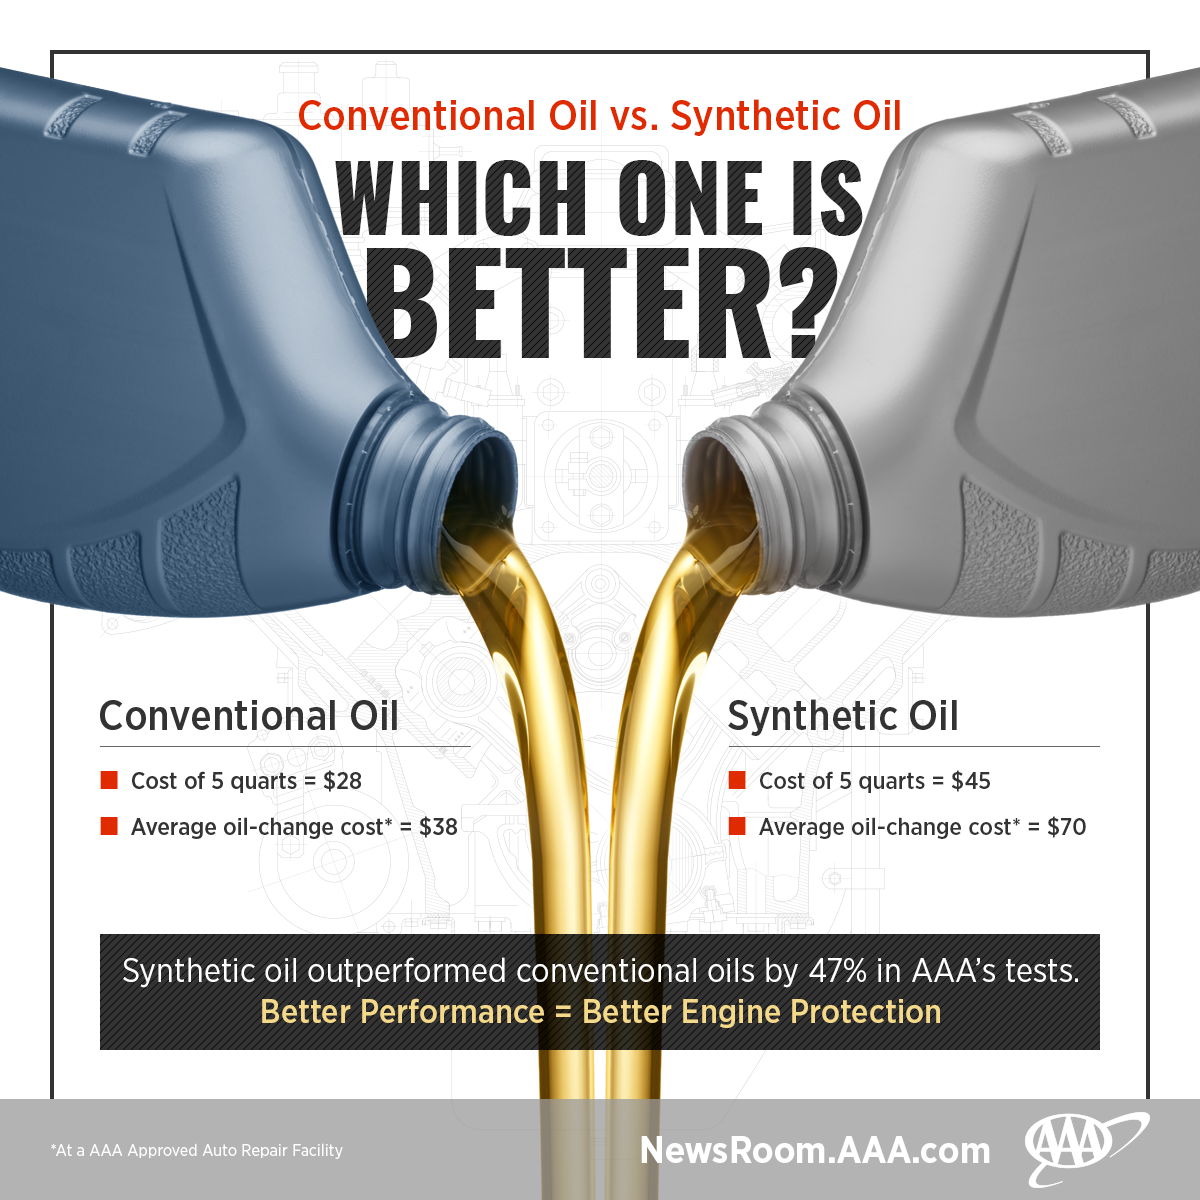 Jiffy Lube oil change prices can be affordable if you wait for special sales or use coupons. If your car uses synthetic oil or regular motor oil, they can do a full oil change. By getting an oil change at JFI, vehicle owners receive a complete check-up of their vehicle.